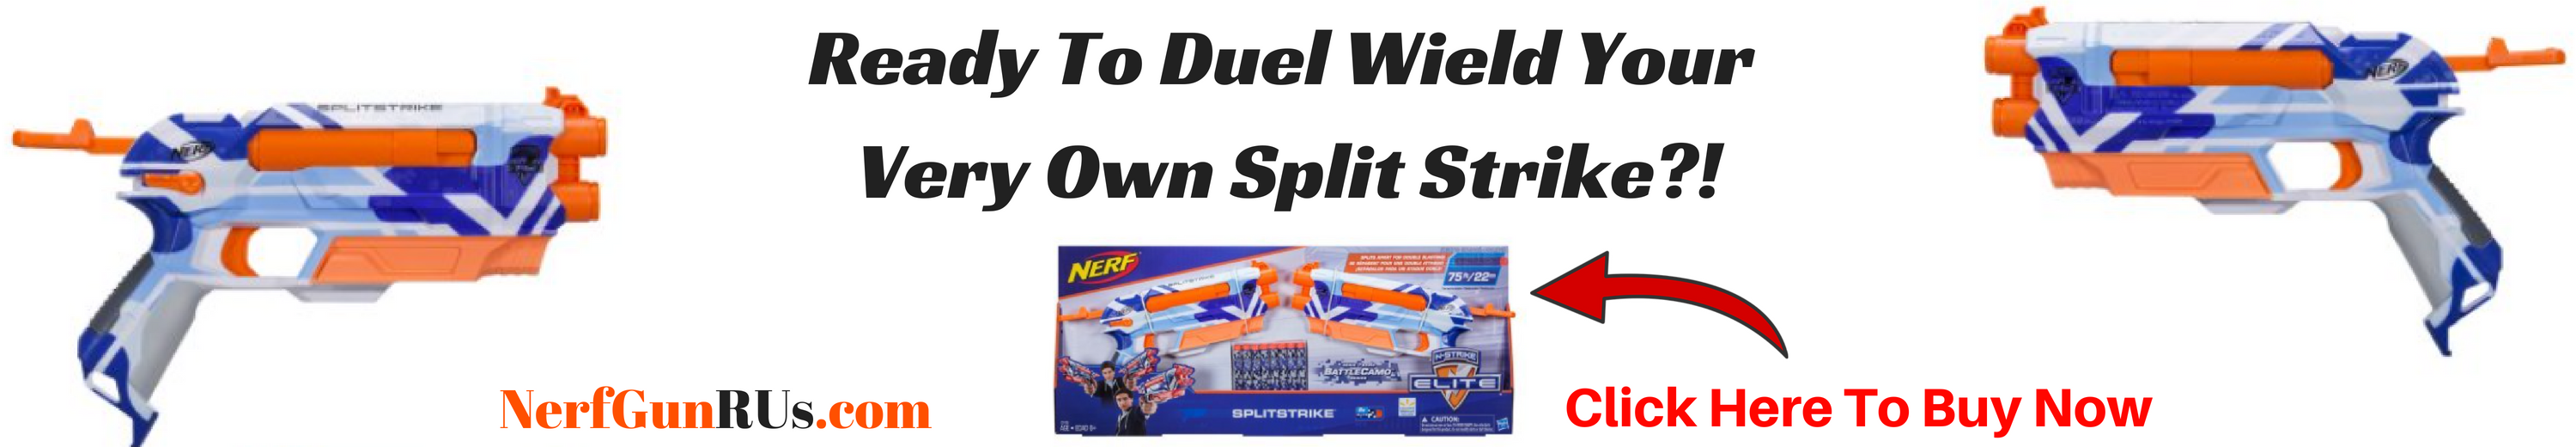 Ready To Duel Wield Your Very Own Split Strike_!